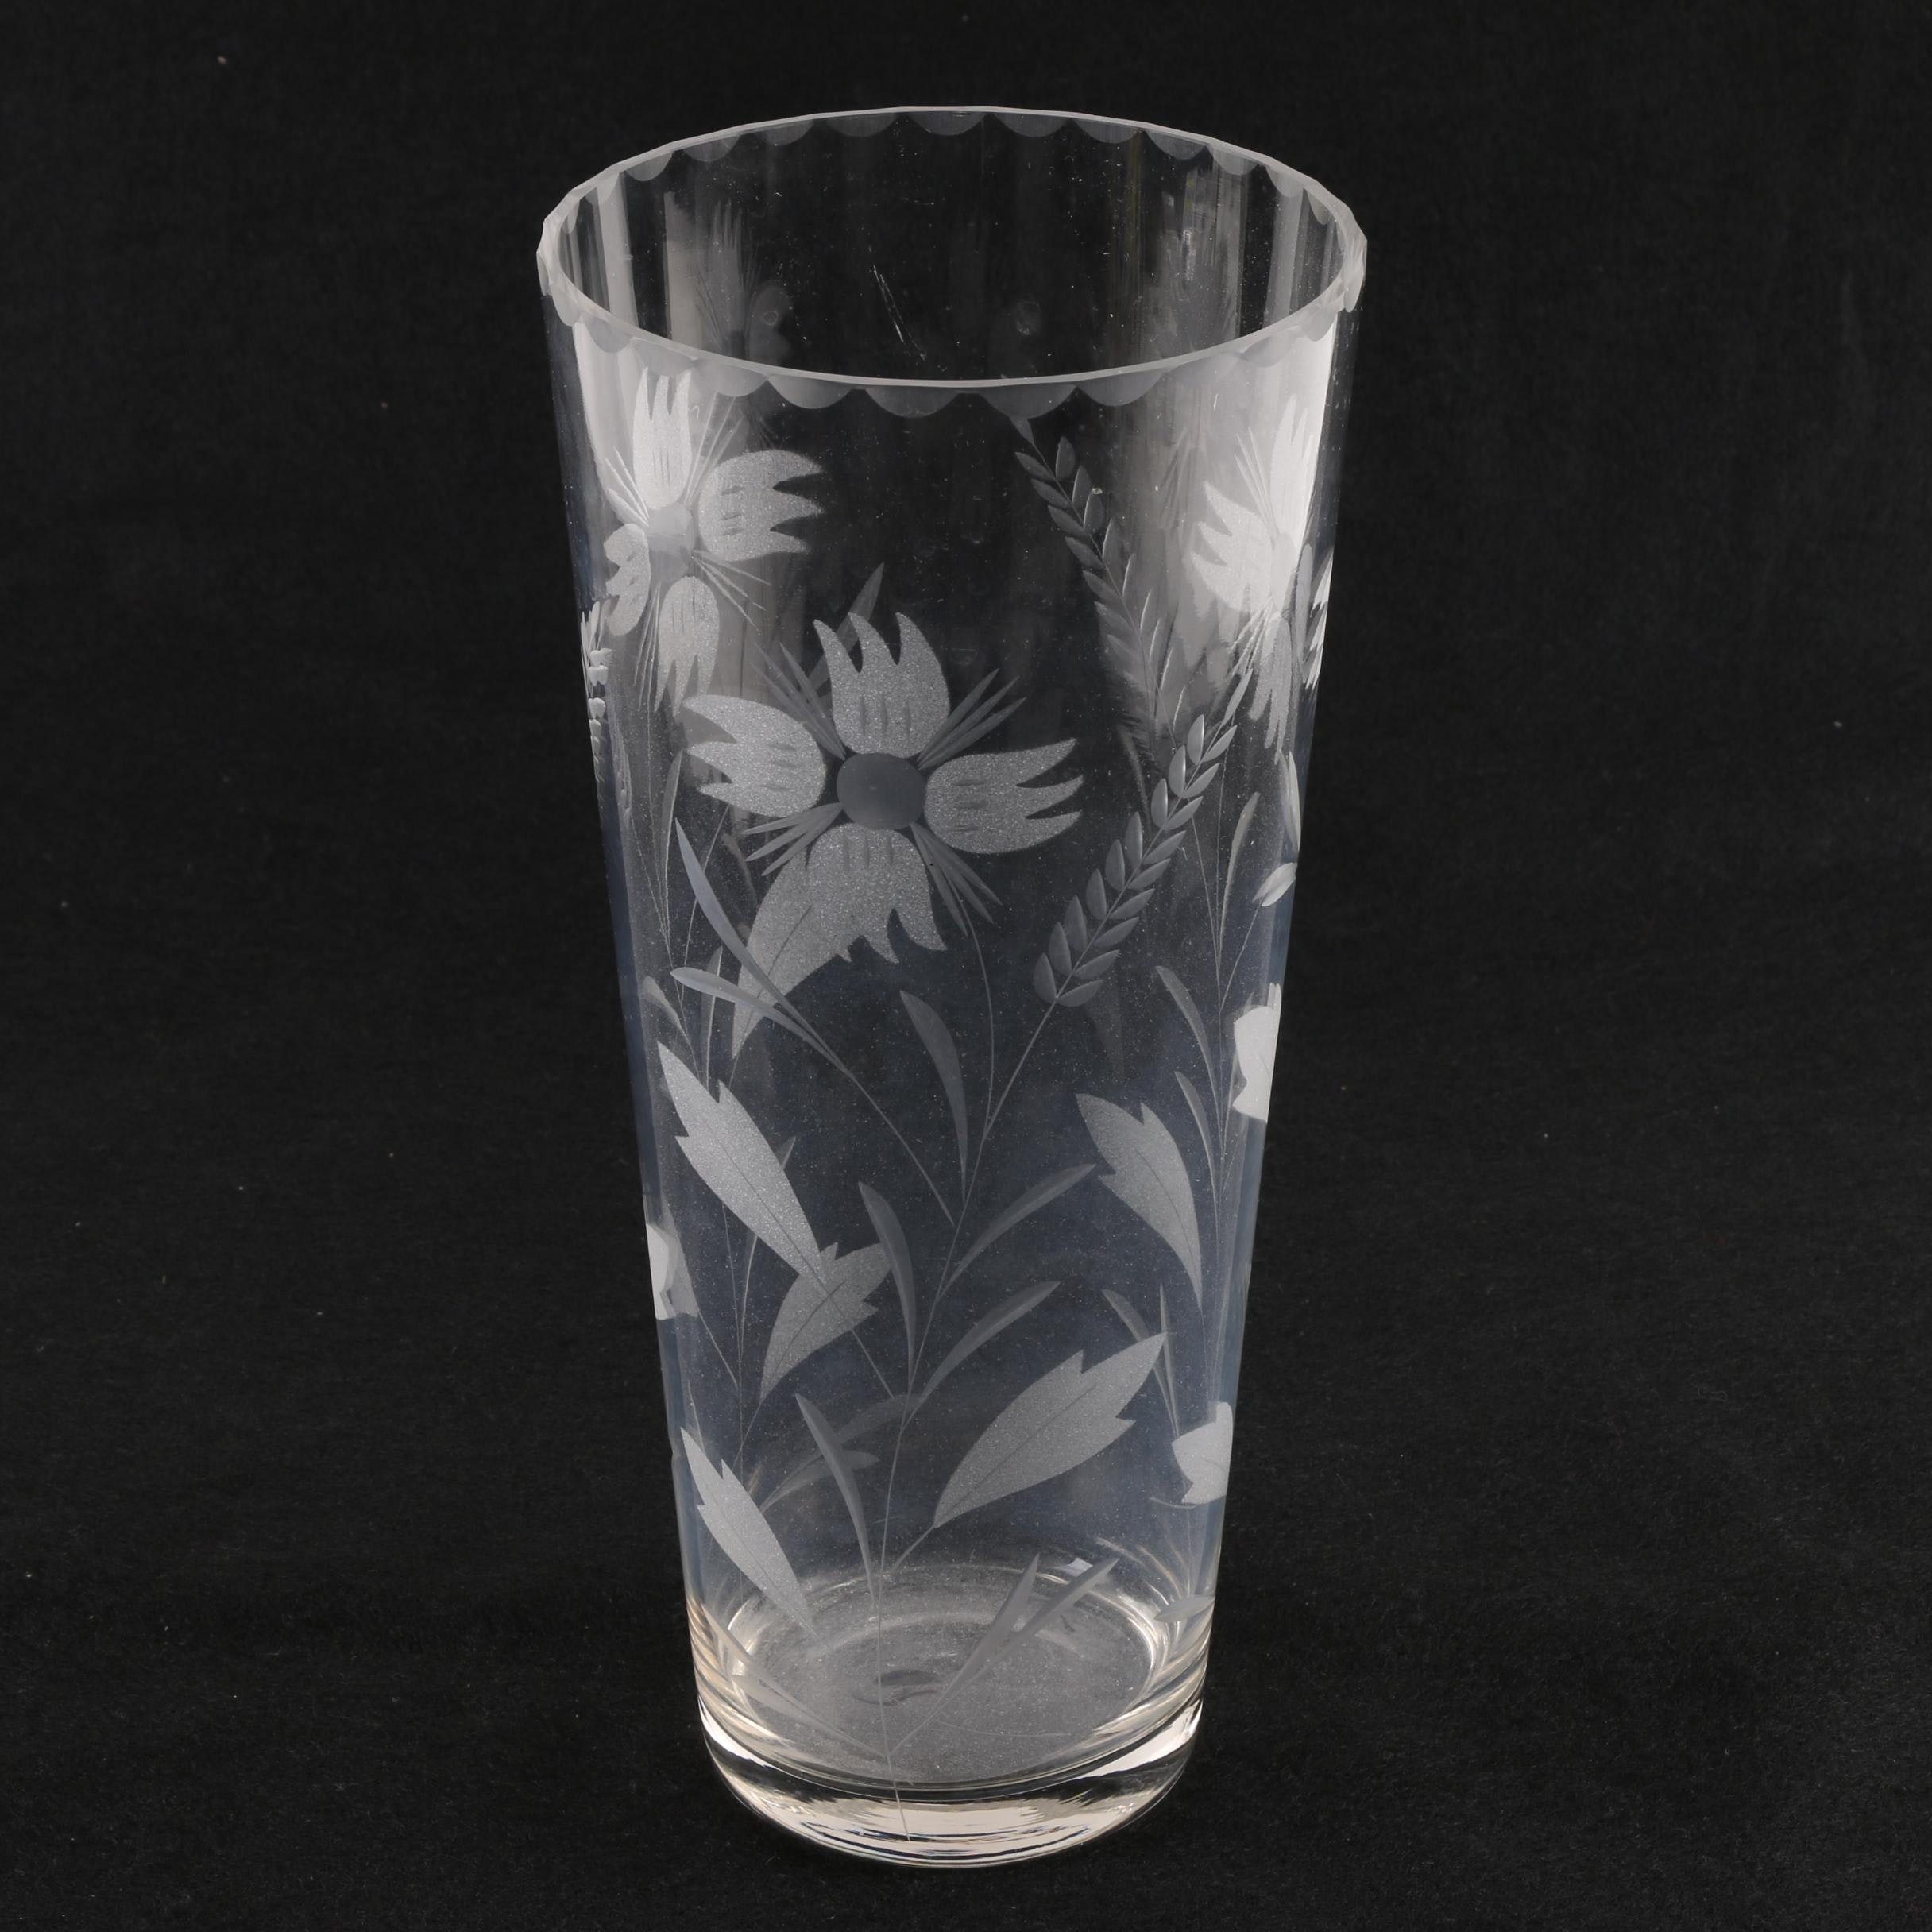 Glass Vase with Etched Floral Motif